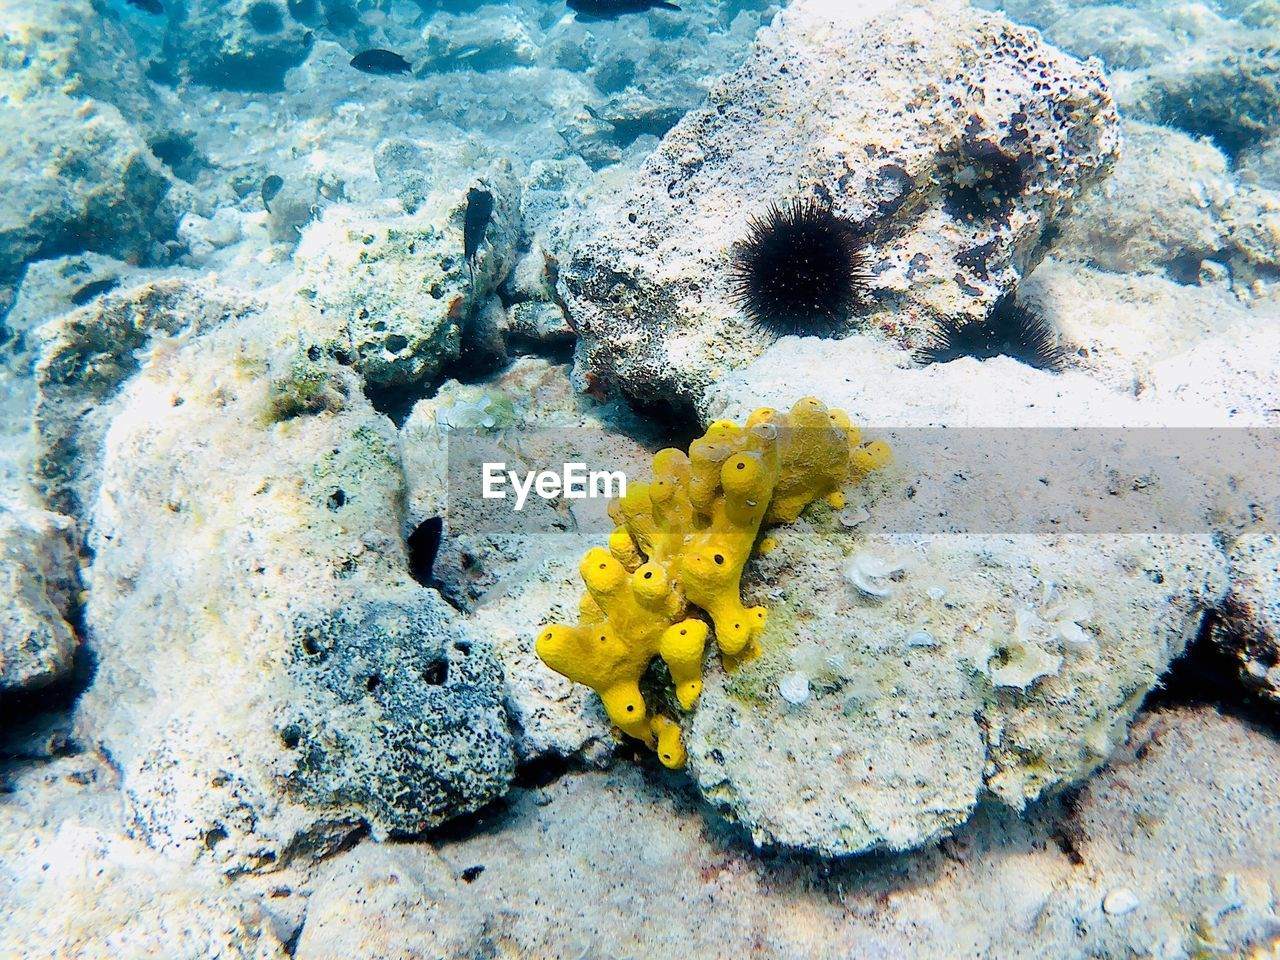 sea, animals in the wild, water, underwater, undersea, sea life, animal wildlife, animal themes, animal, invertebrate, marine, nature, beauty in nature, yellow, rock, no people, coral, solid, rock - object, outdoors